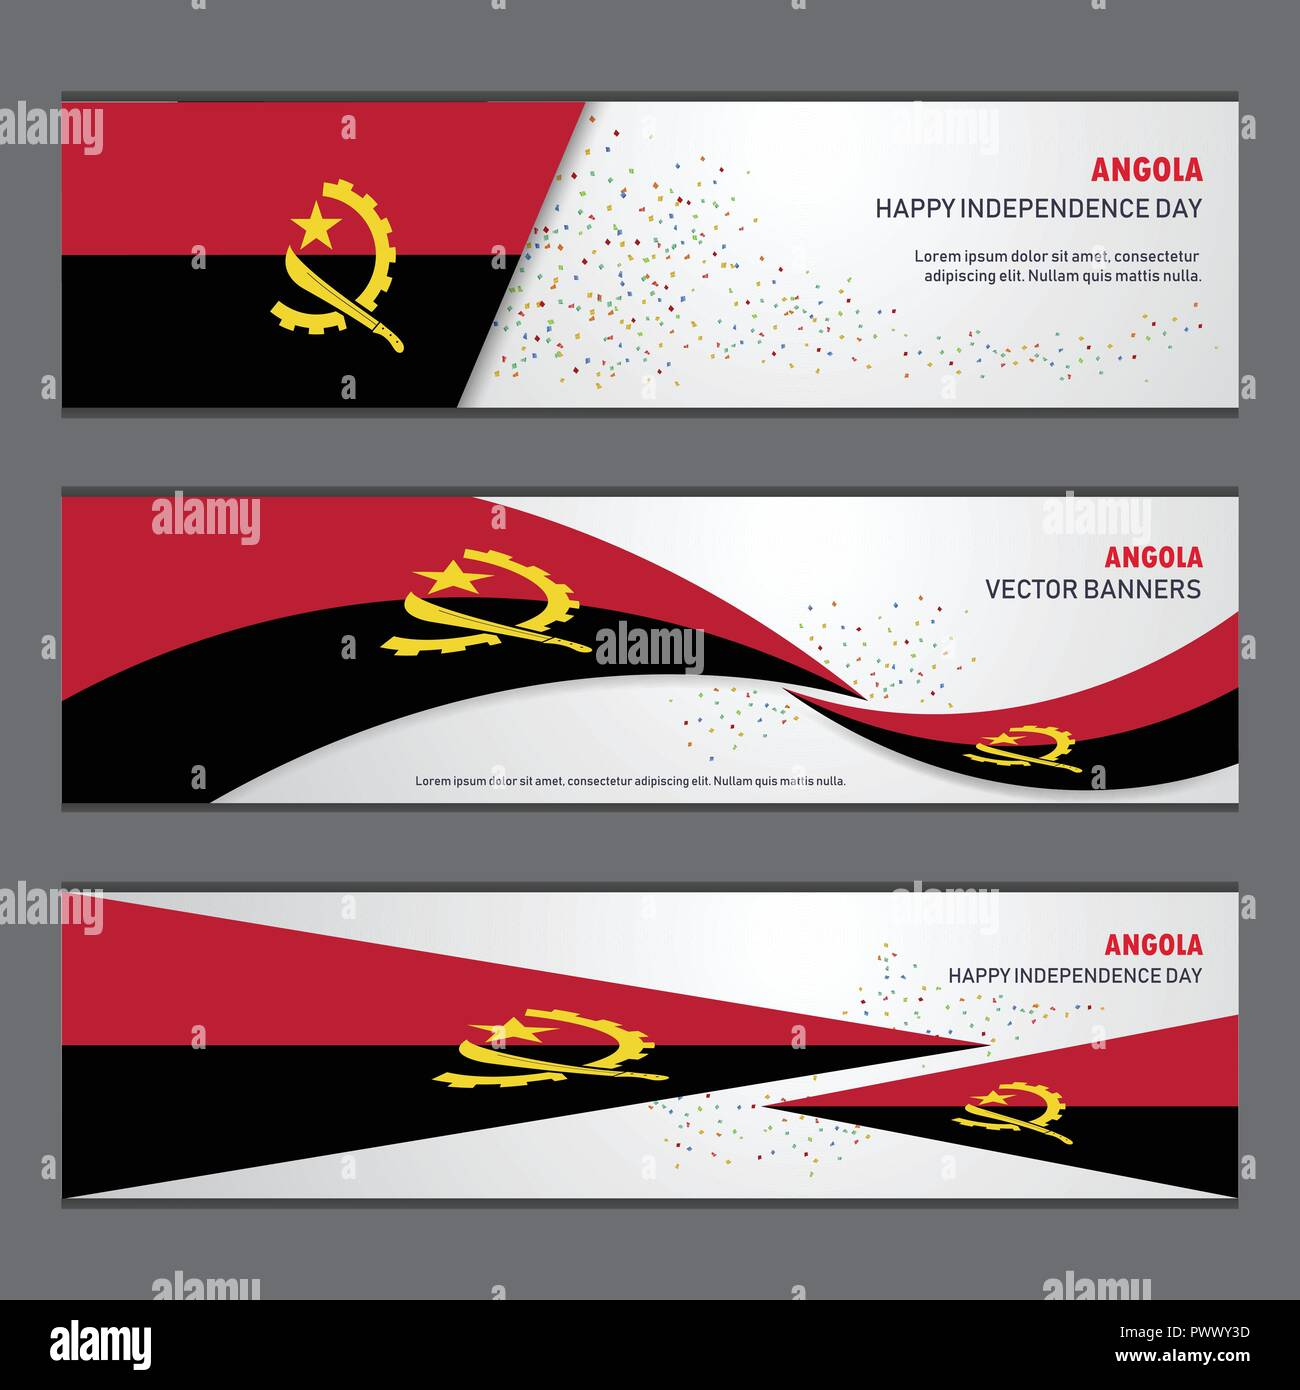 Angola independence day abstract background design banner and flyer, postcard, landscape, celebration vector illustration - Stock Image